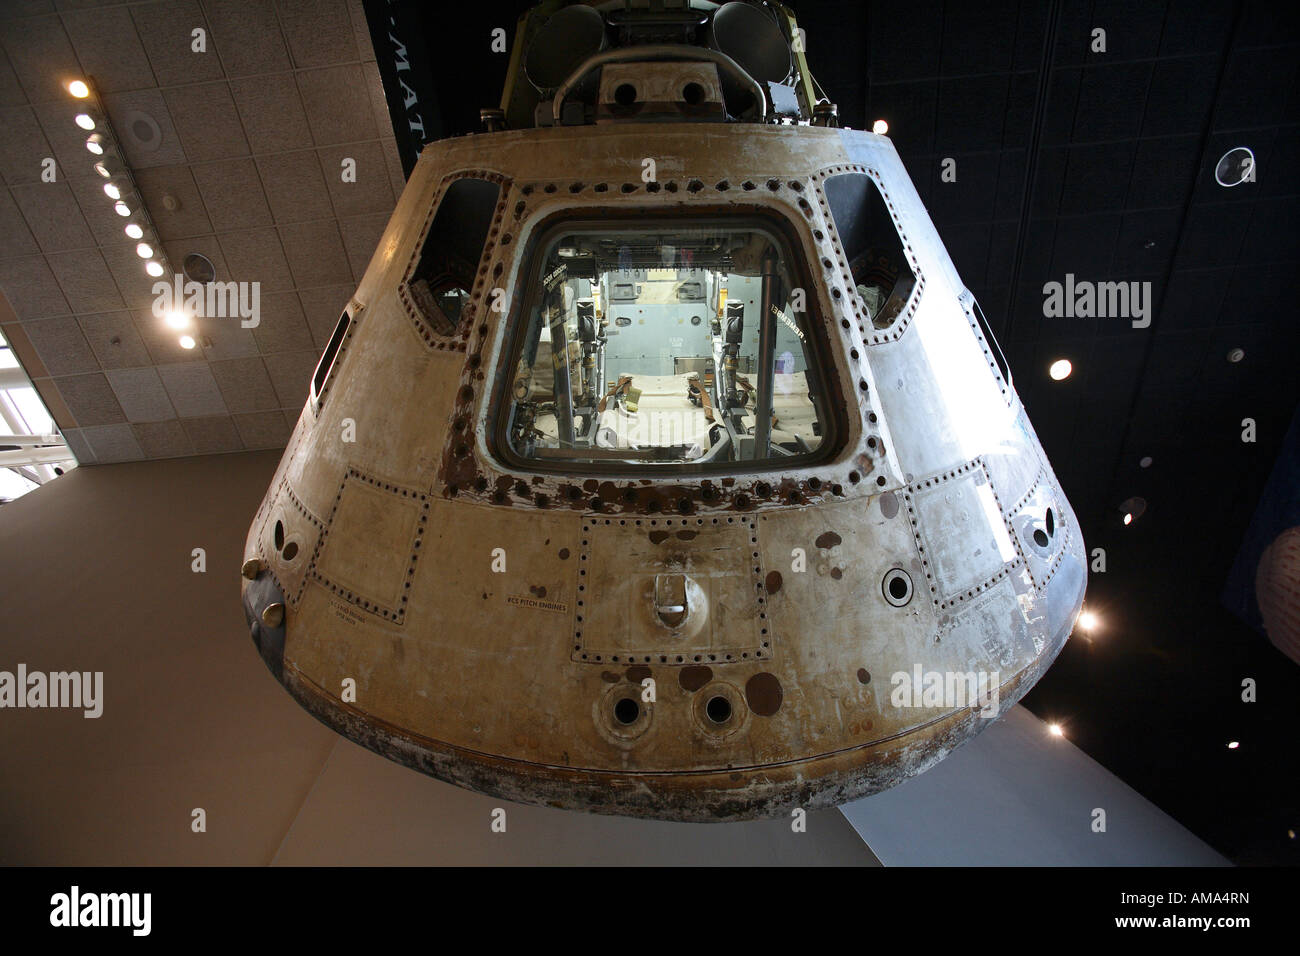 apollo air and space museum - photo #40